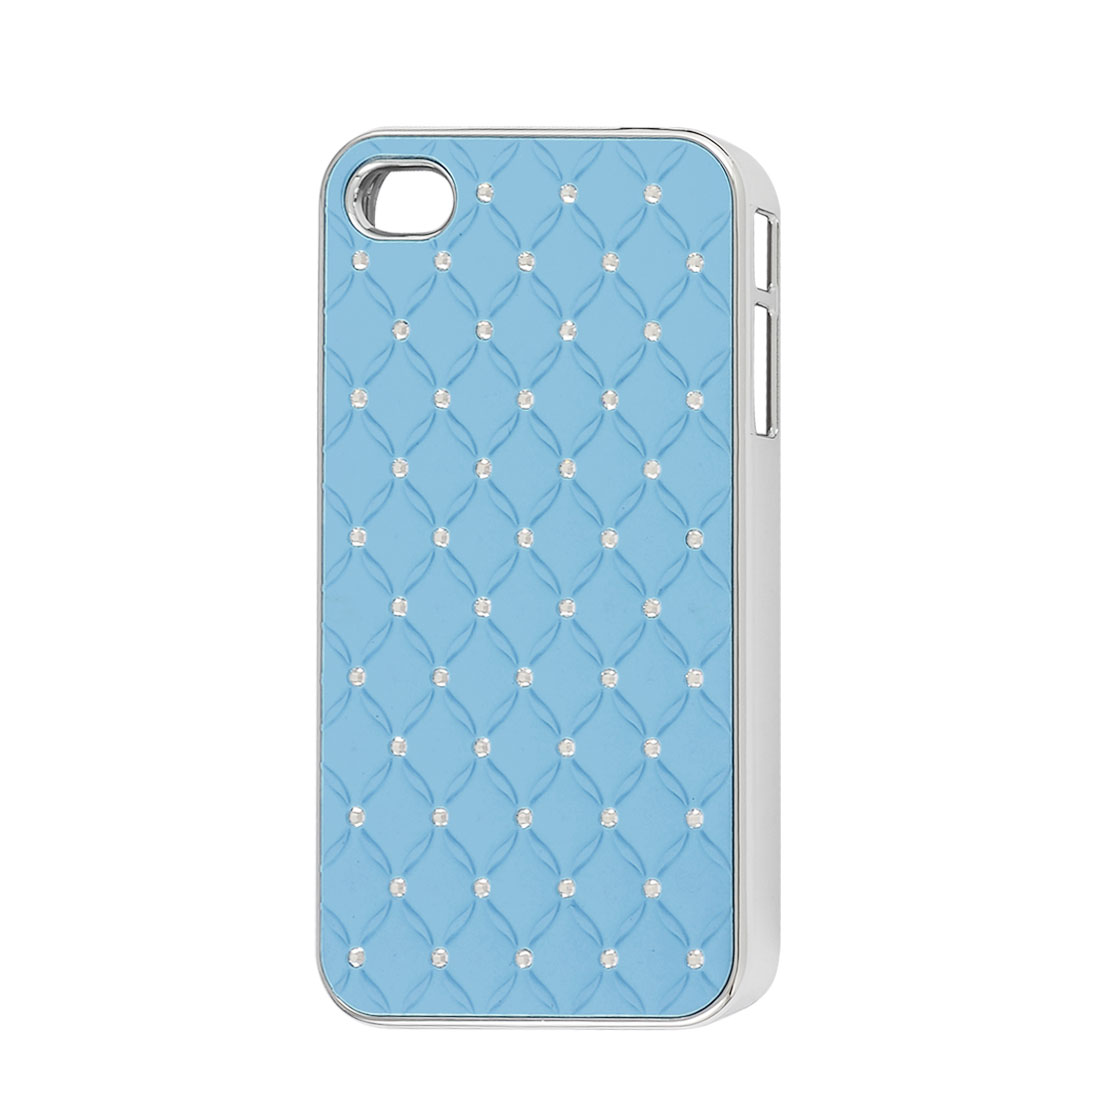 Light Blue Faux Leather Coated Rhinestone Hard Back Case for iPhone 4 4G